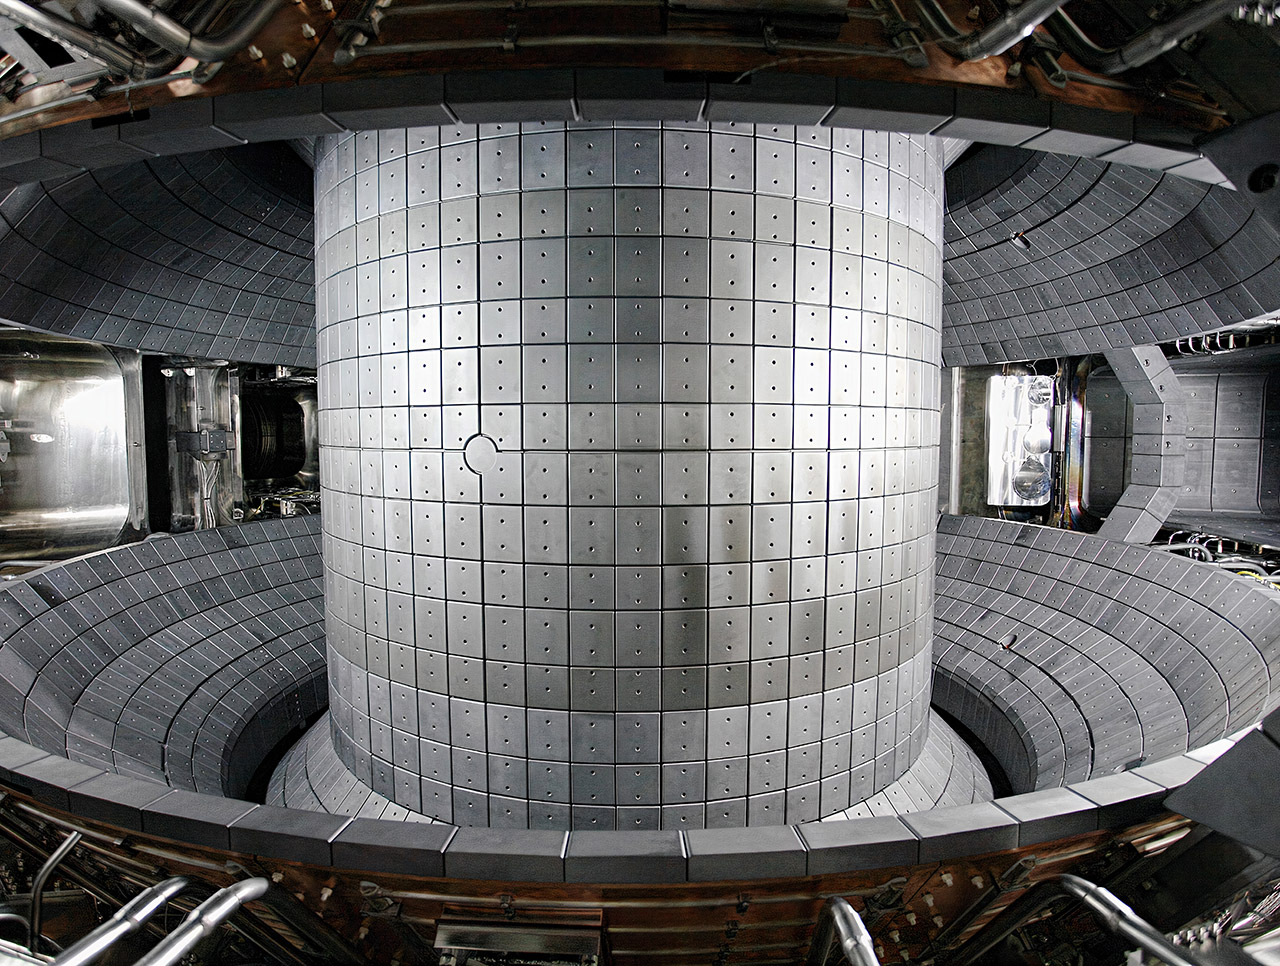 KSTAR Superconducting Fusion Device Record